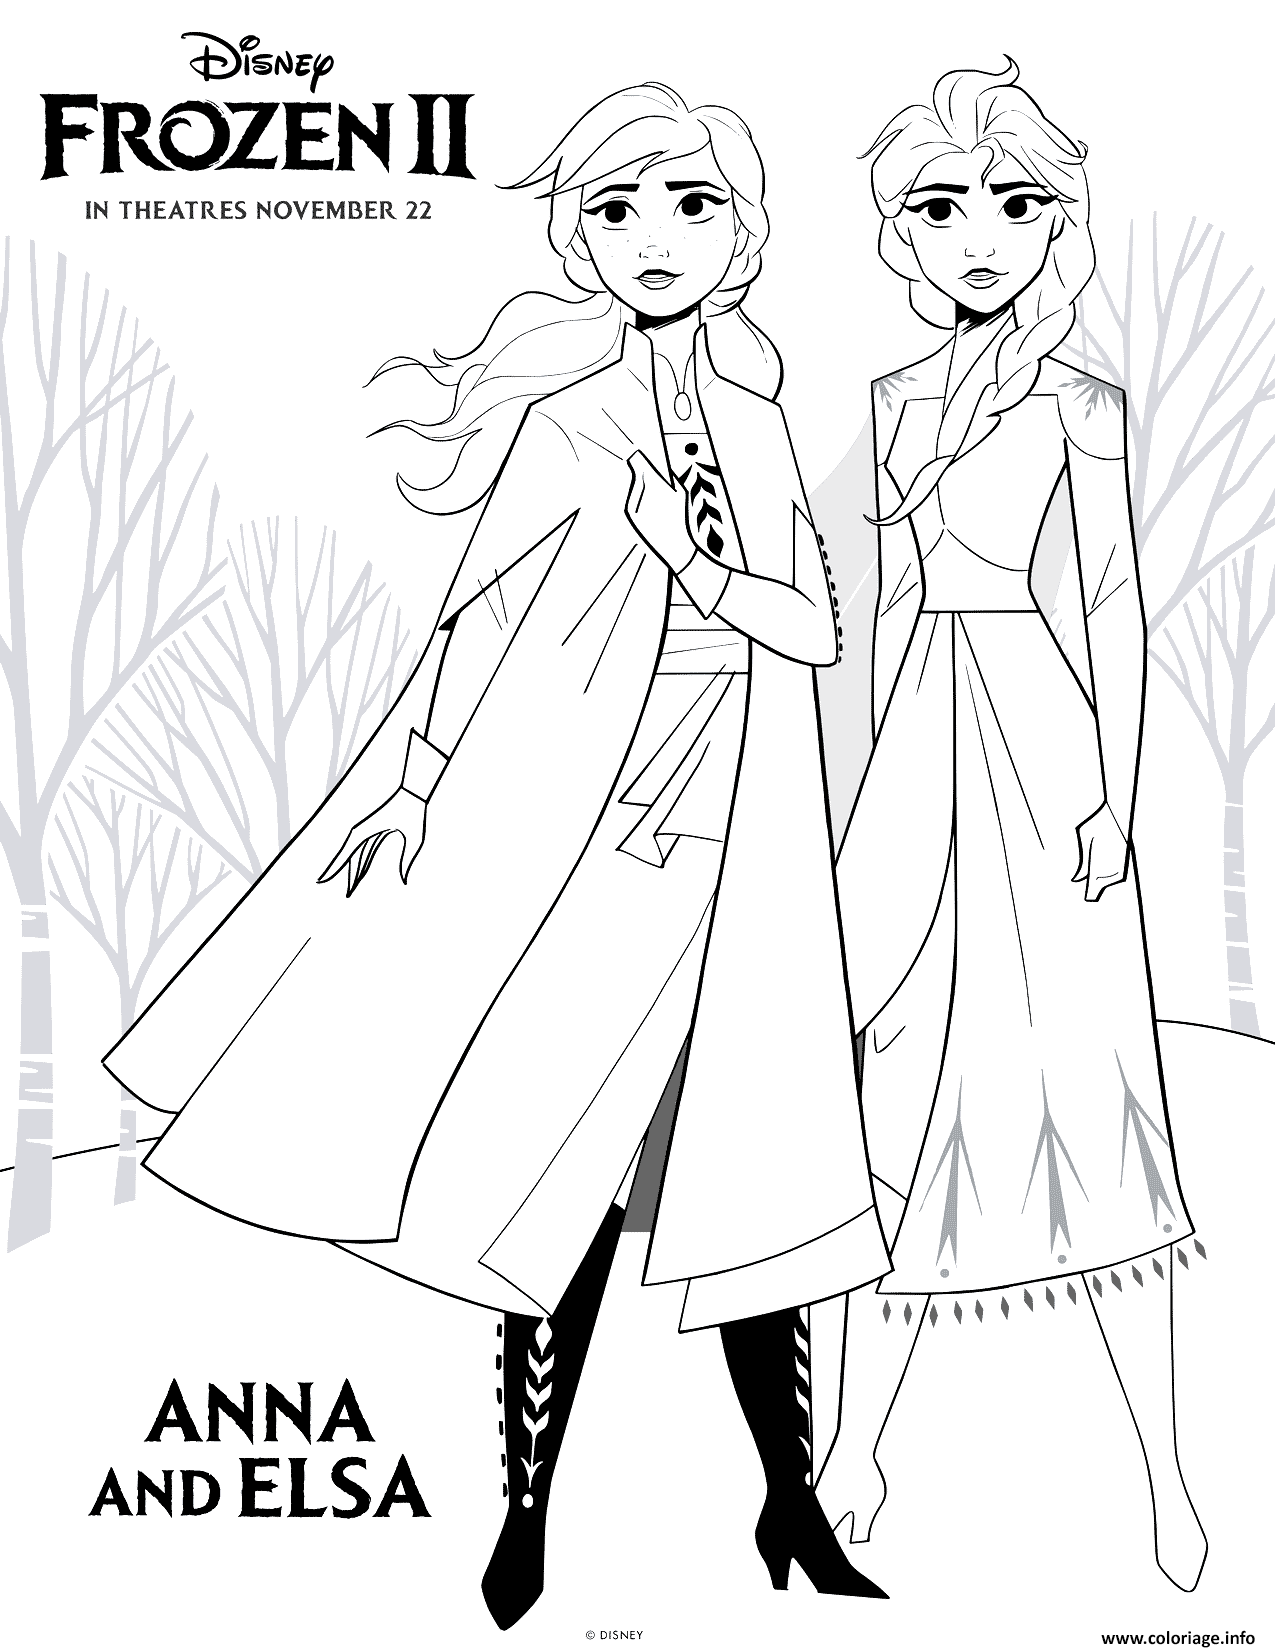 Coloriage Frozen 2 Anna And Elsa Dessin